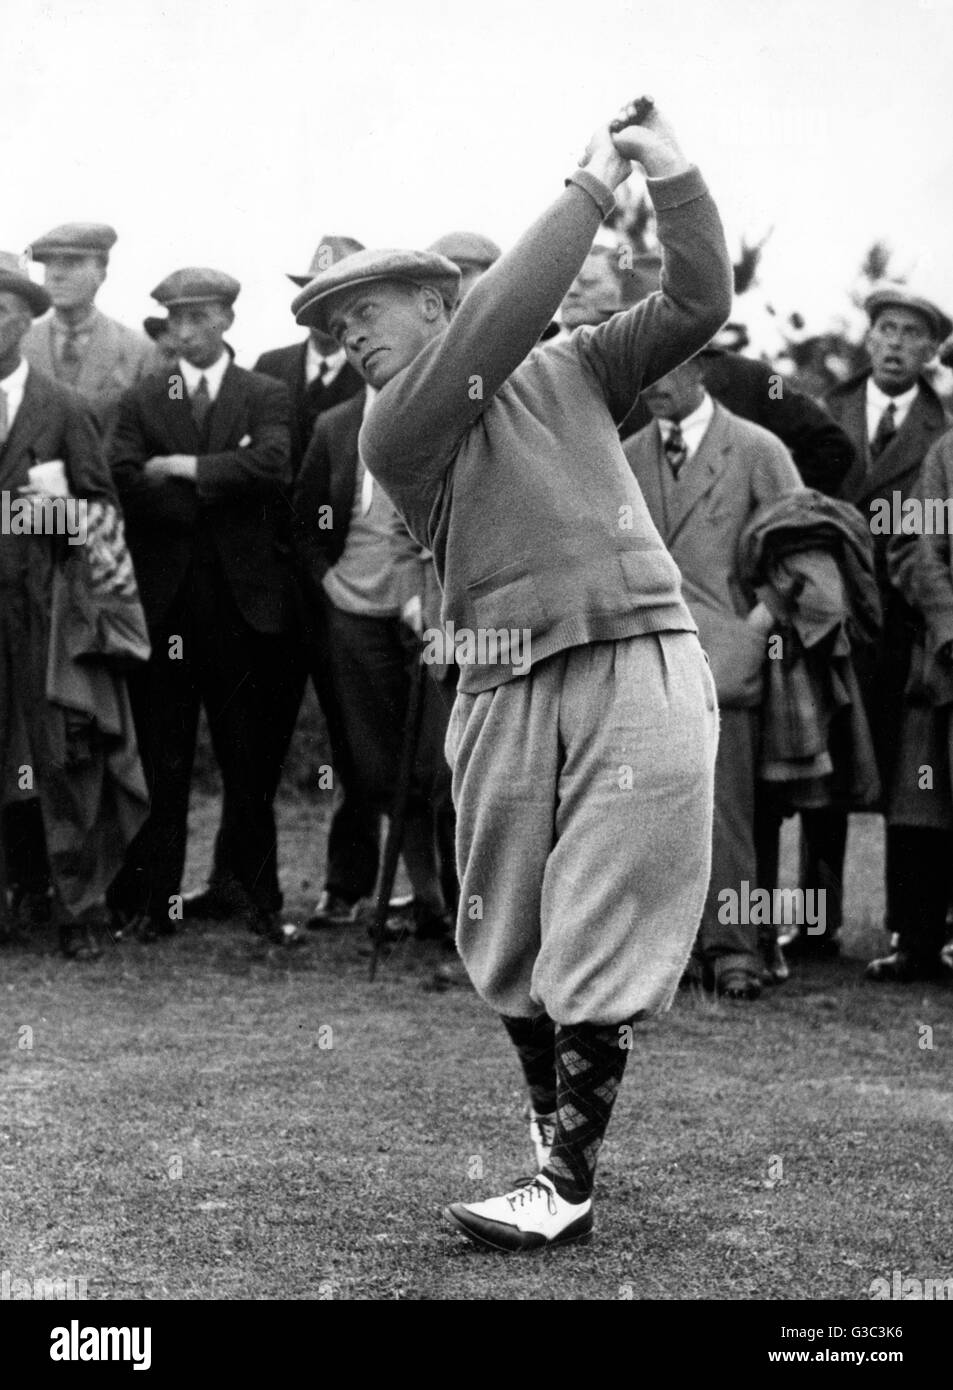 Golfer watched by spectators.      Date: circa 1920s - Stock Image